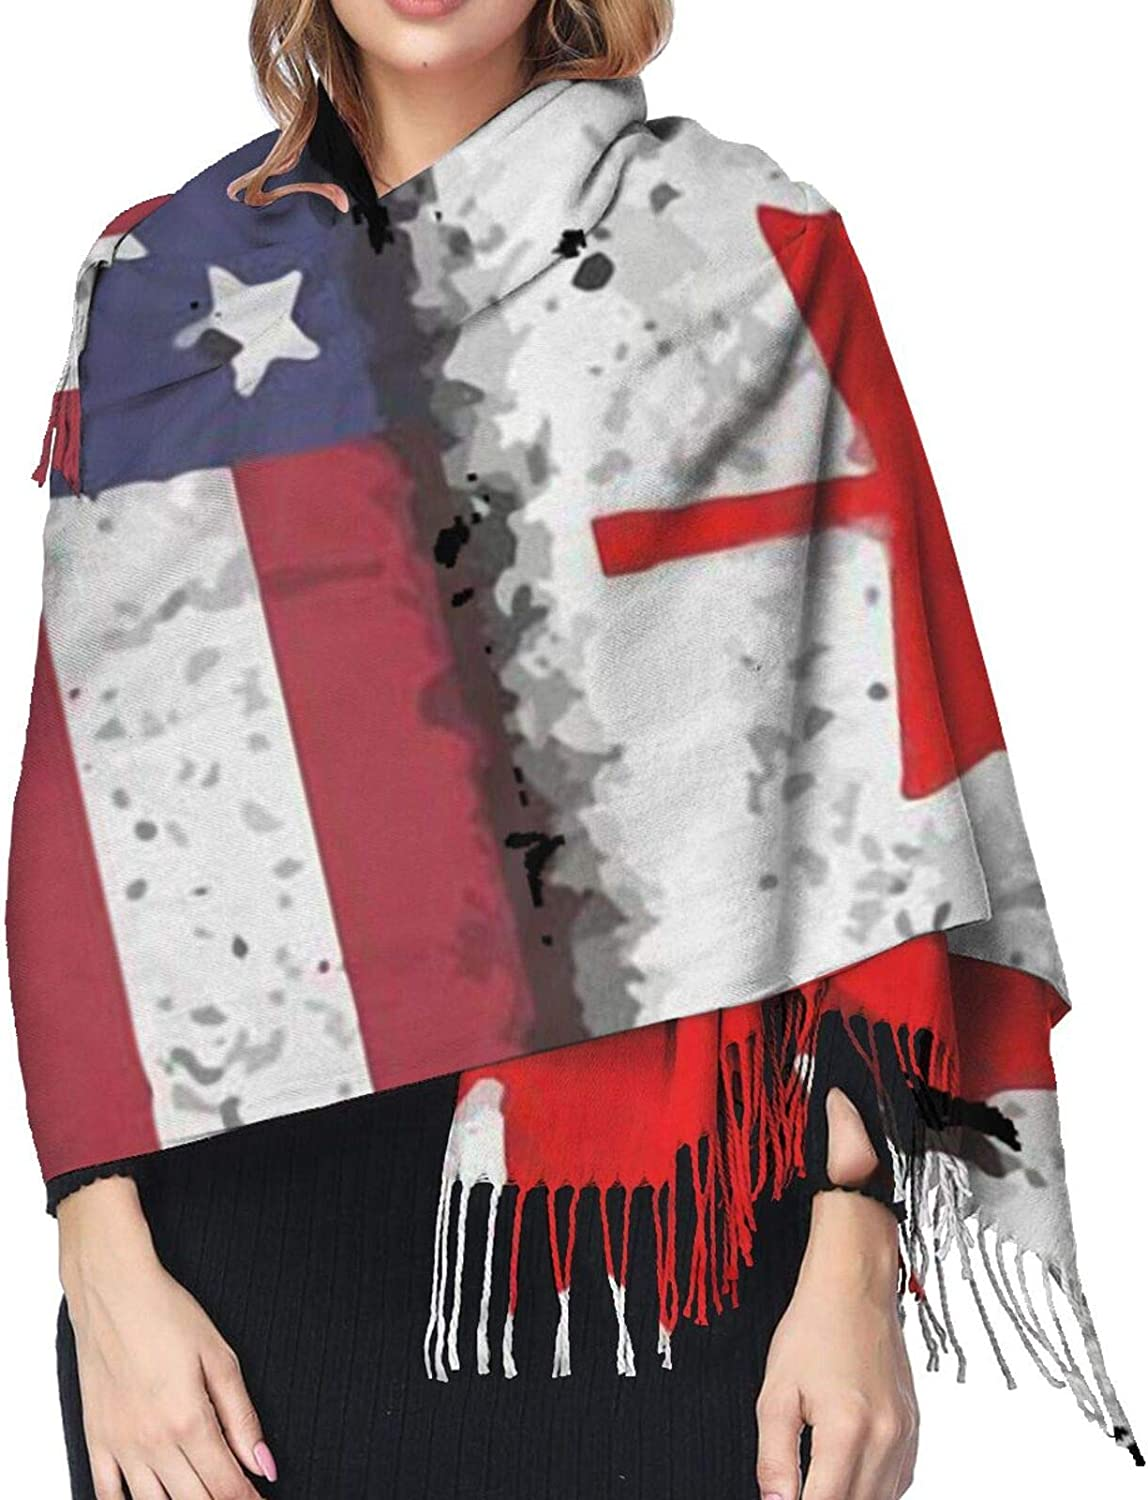 Canadian American Flag Cashmere Scarf Fashion Long Shawl with Fringed Edges Super Soft Warm Cozy Light Blanket Scarves Wrap Ultra Warm Winter Accessories Gifts For Men And Women